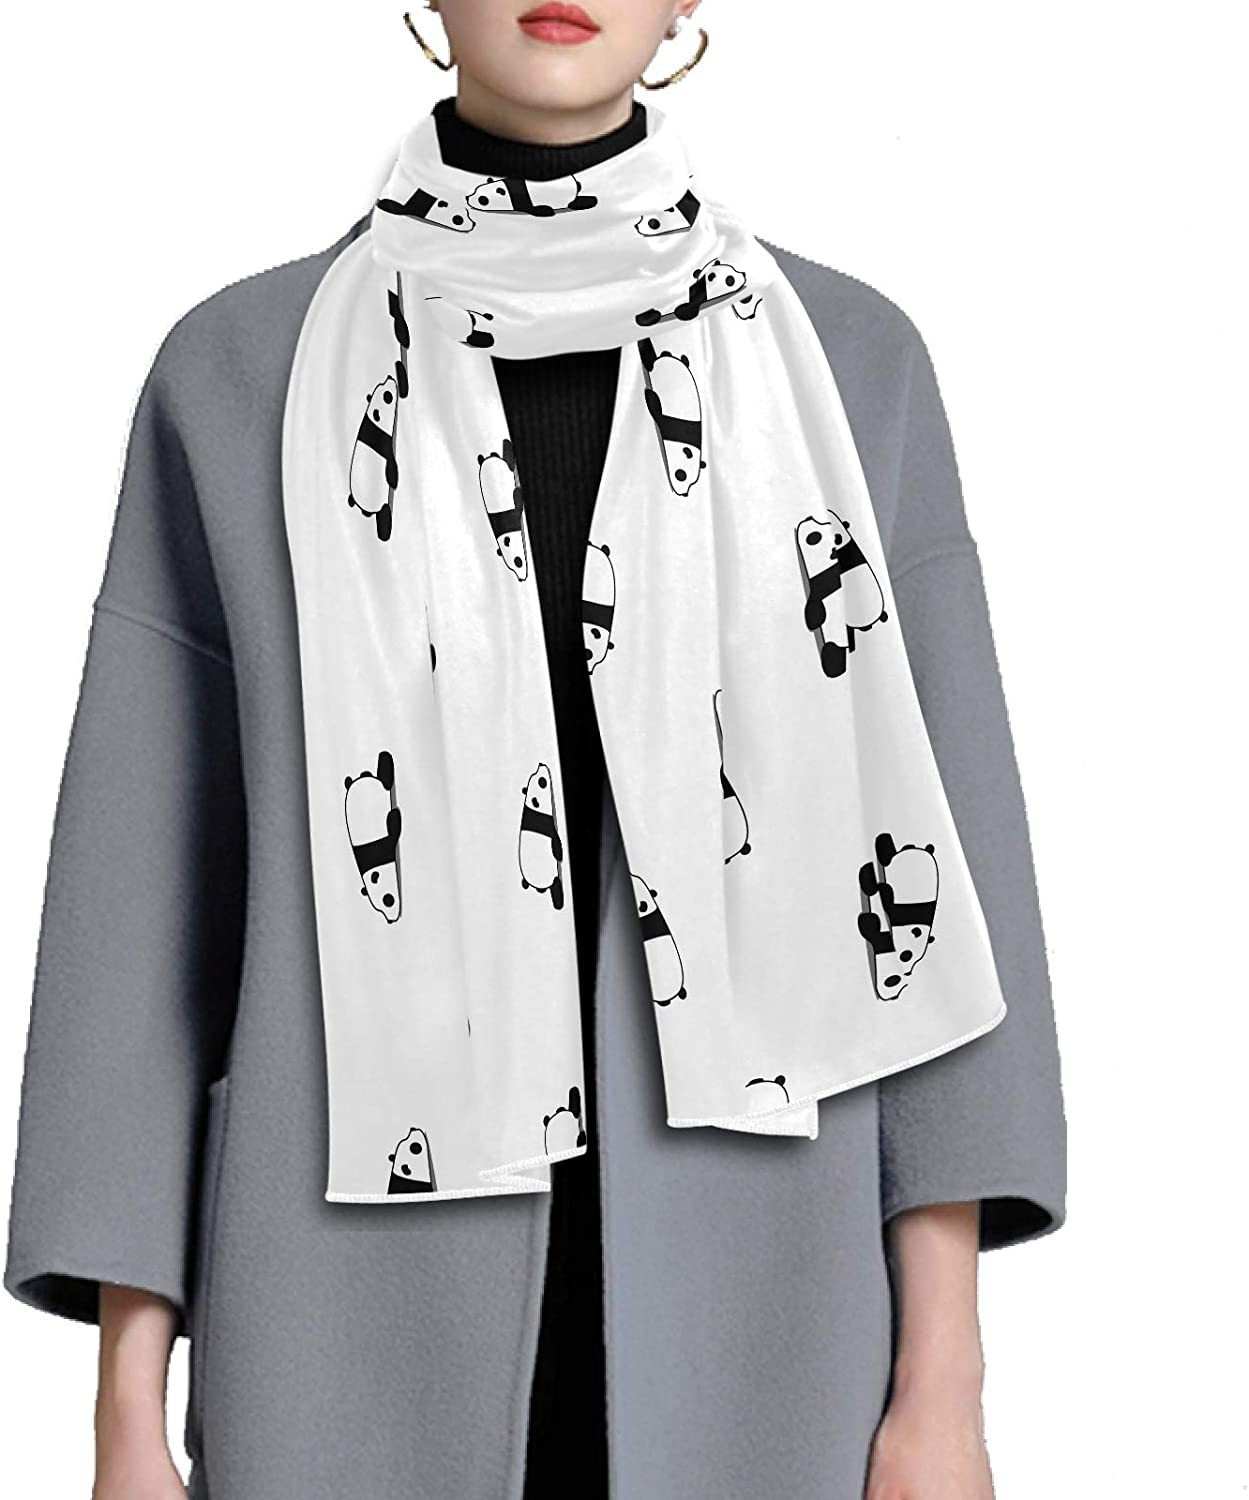 Scarf for Women and Men Lazy Panda Shawl Wraps Blanket Scarf Soft Winter Large Scarves Lightweight